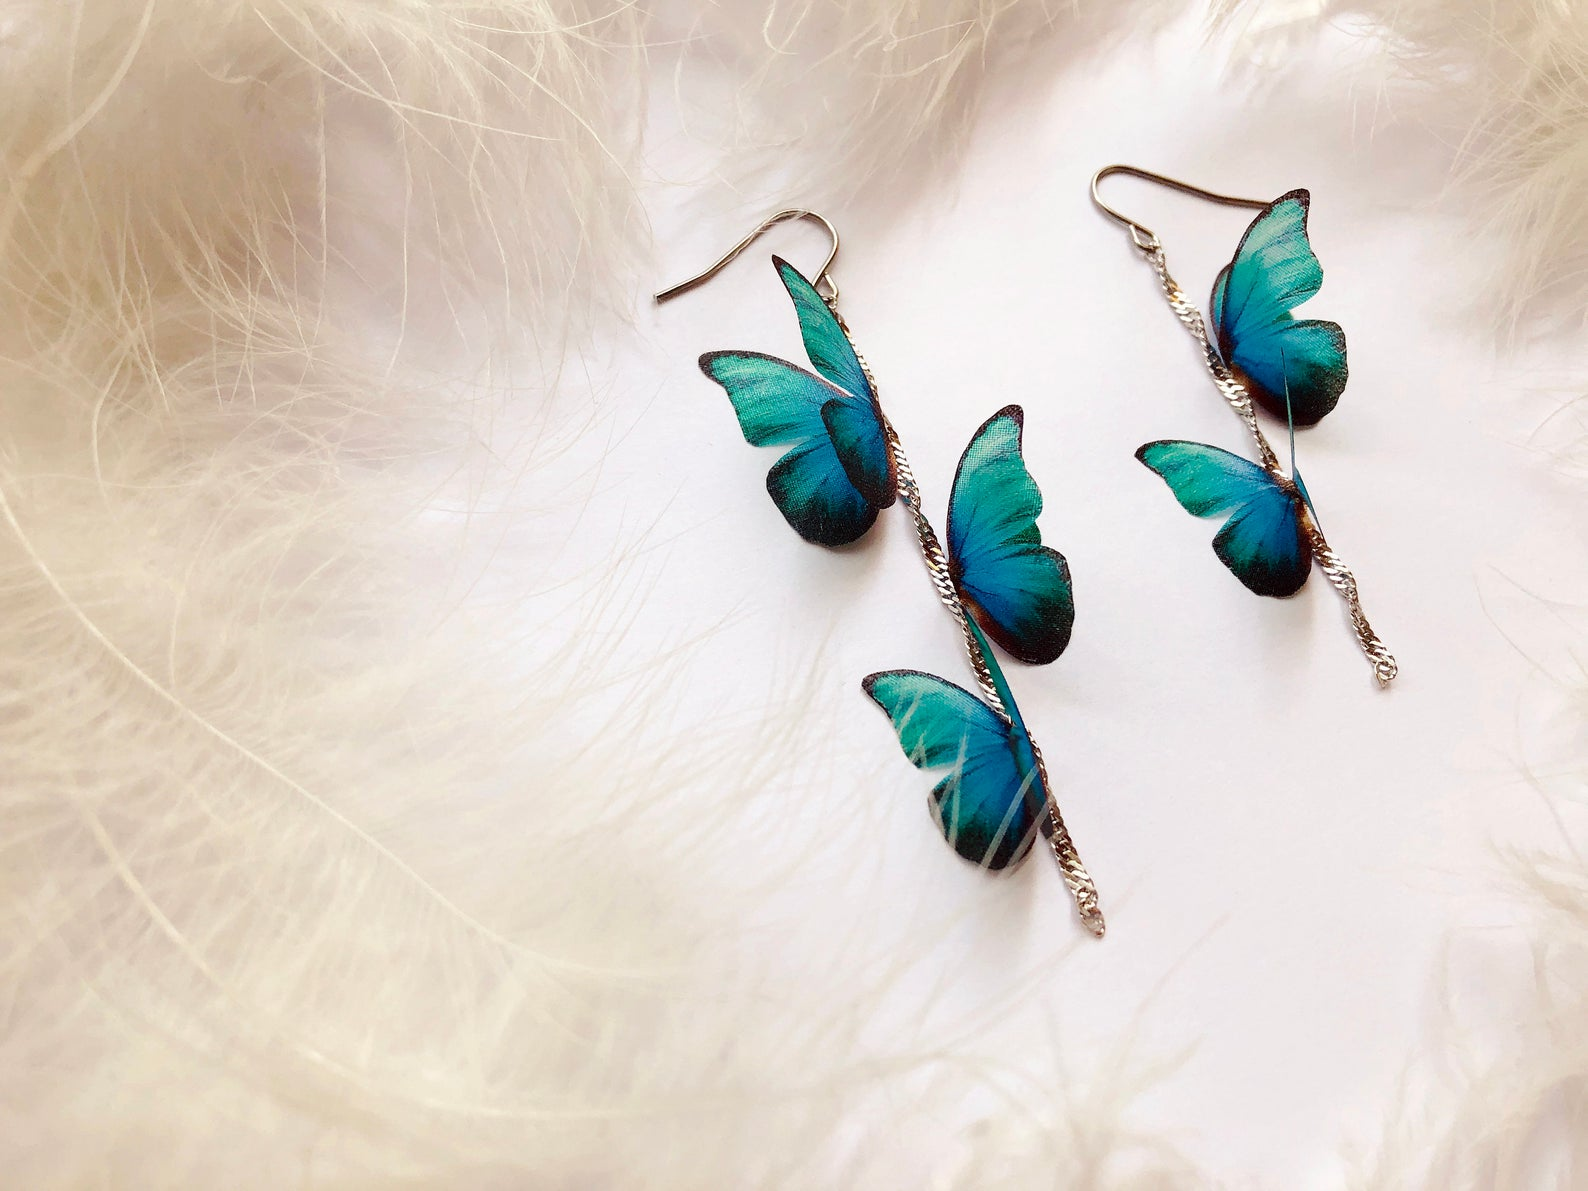 Emerald Butterfly Earrings with Chains